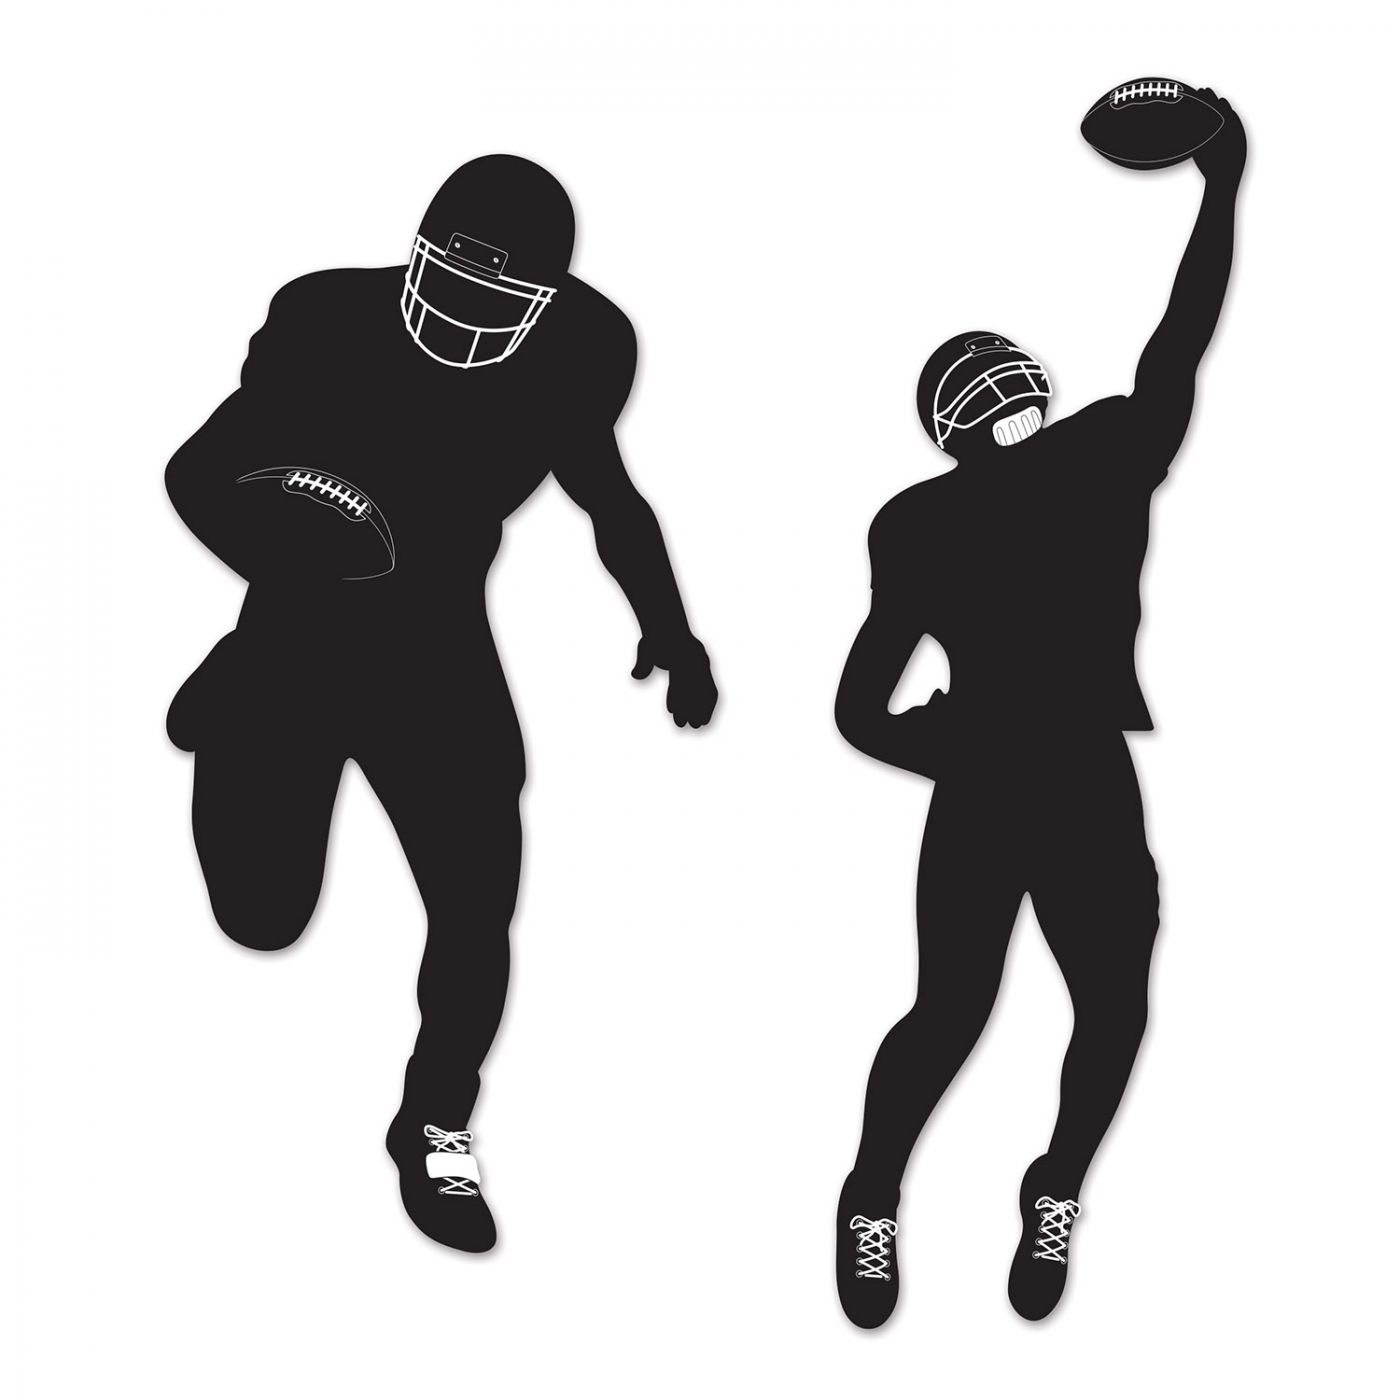 Football Silhouettes image